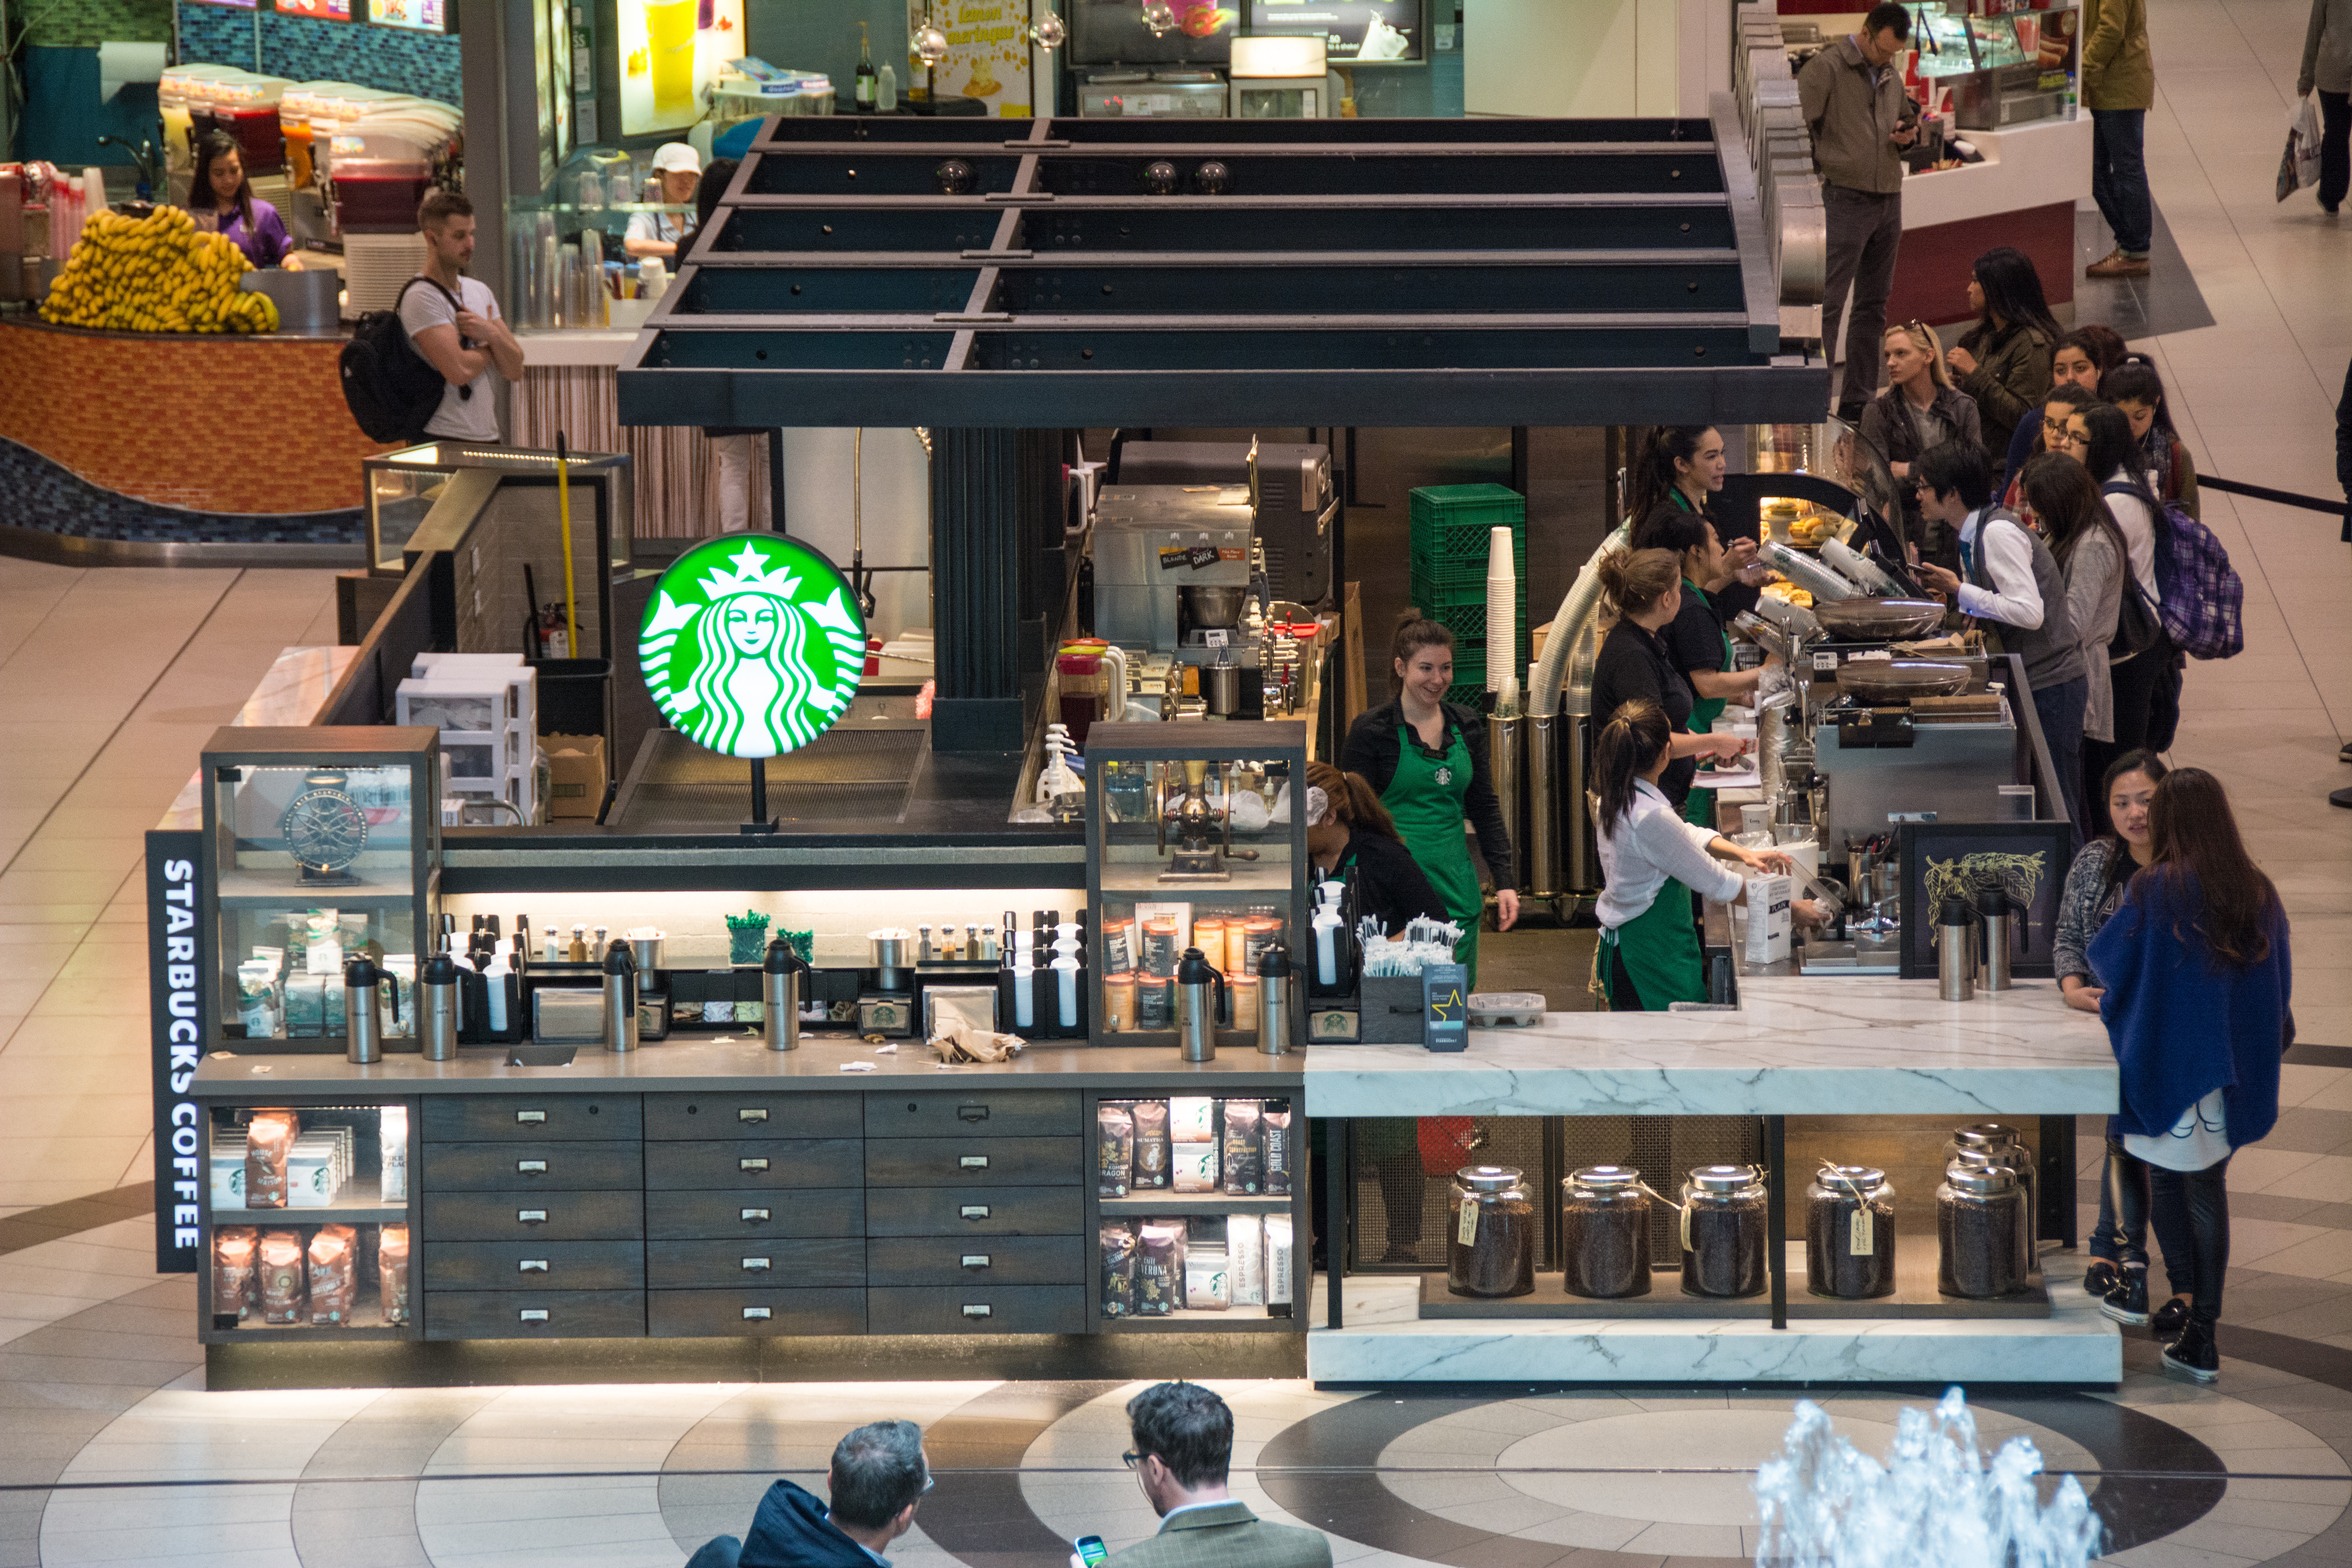 Starbucks in a shopping mall.  Four baristas surround a